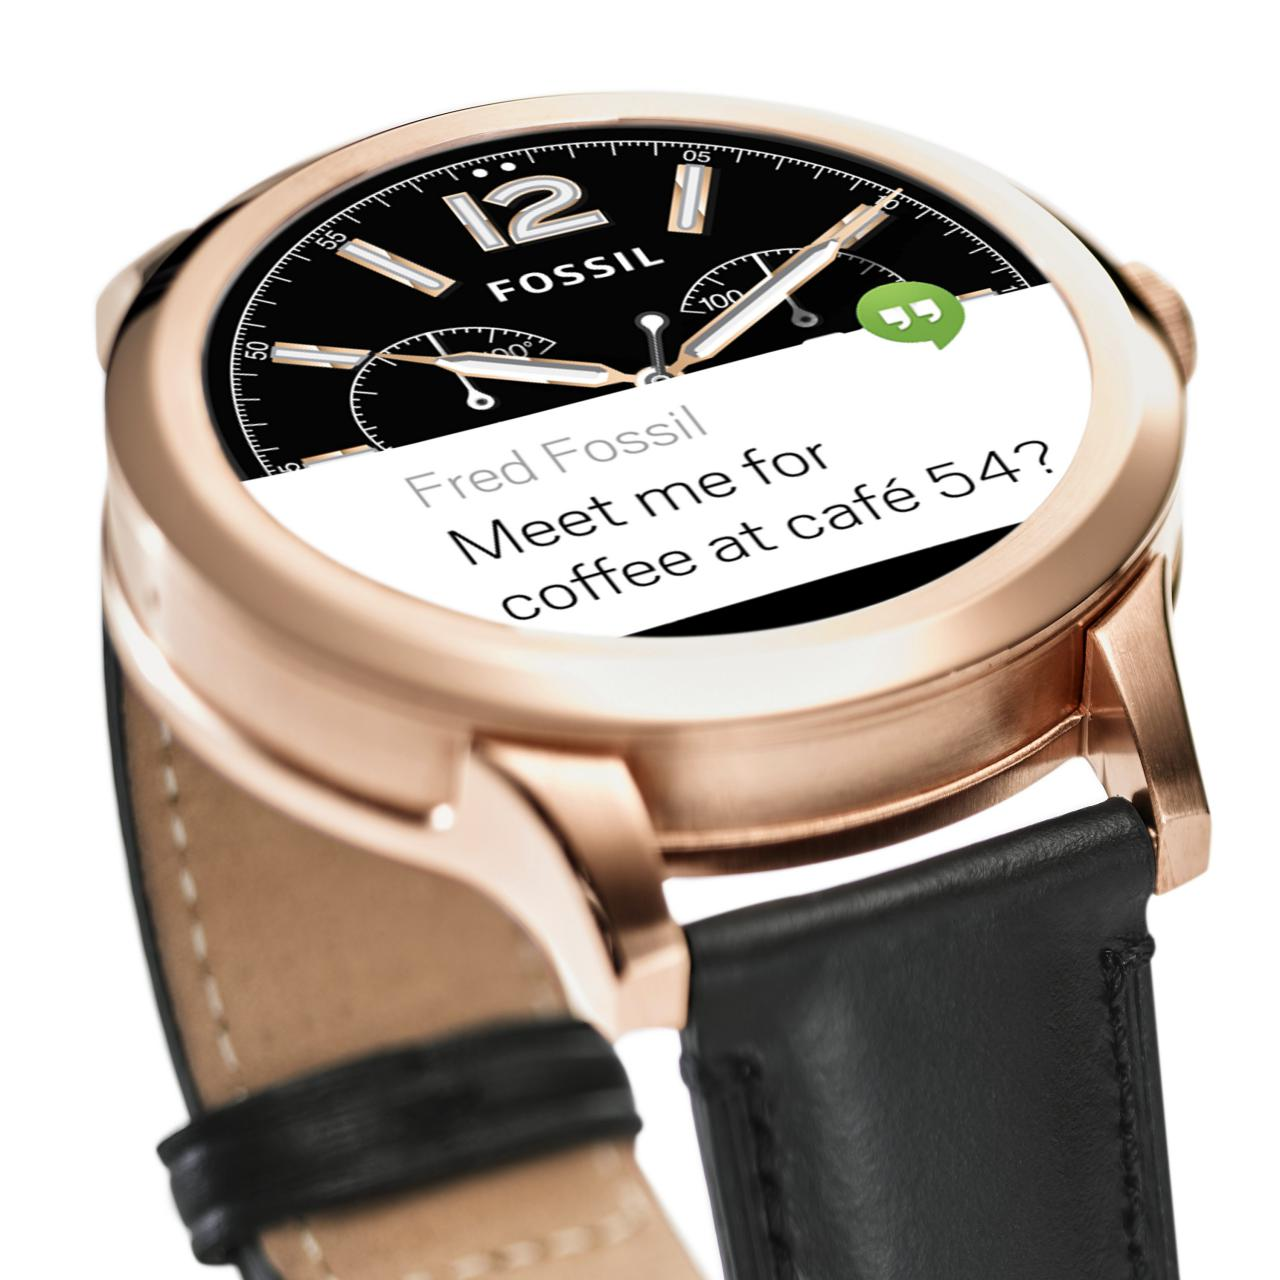 fossil fossil q smartwatch herrenuhr founder touchscreen nur 249 00. Black Bedroom Furniture Sets. Home Design Ideas